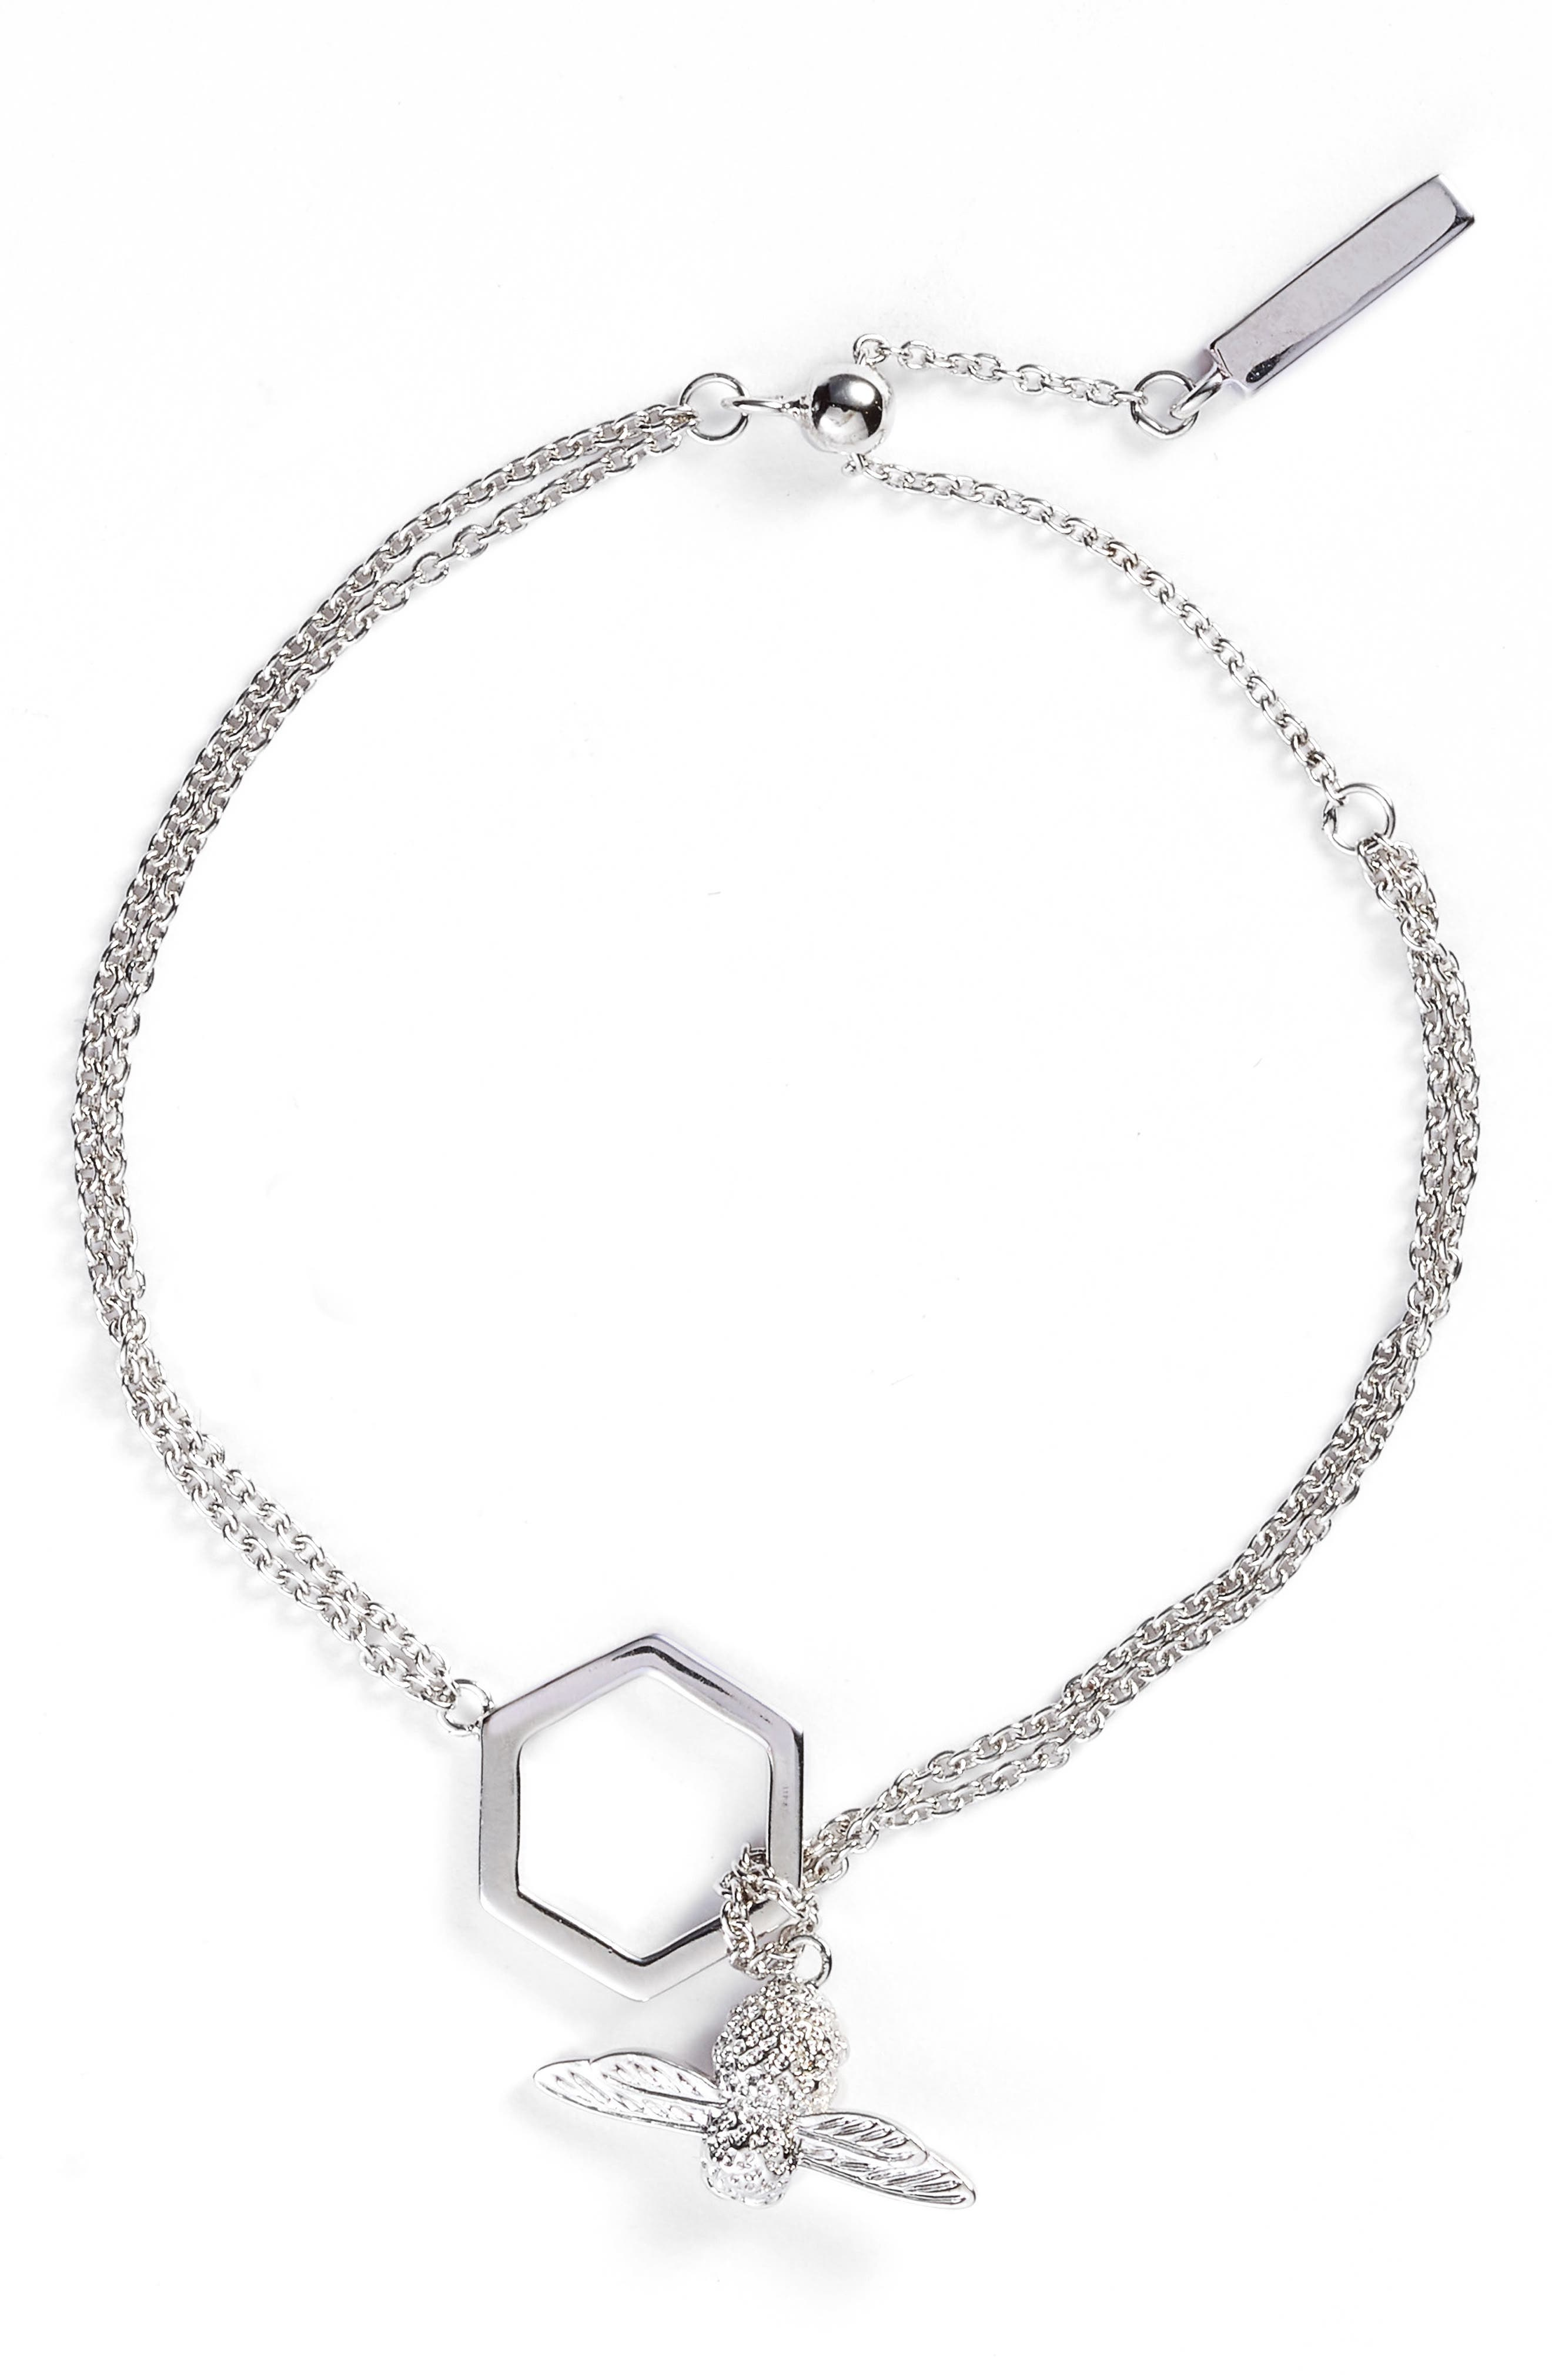 Honeycomb Bee Chain Bracelet,                             Main thumbnail 1, color,                             SILVER